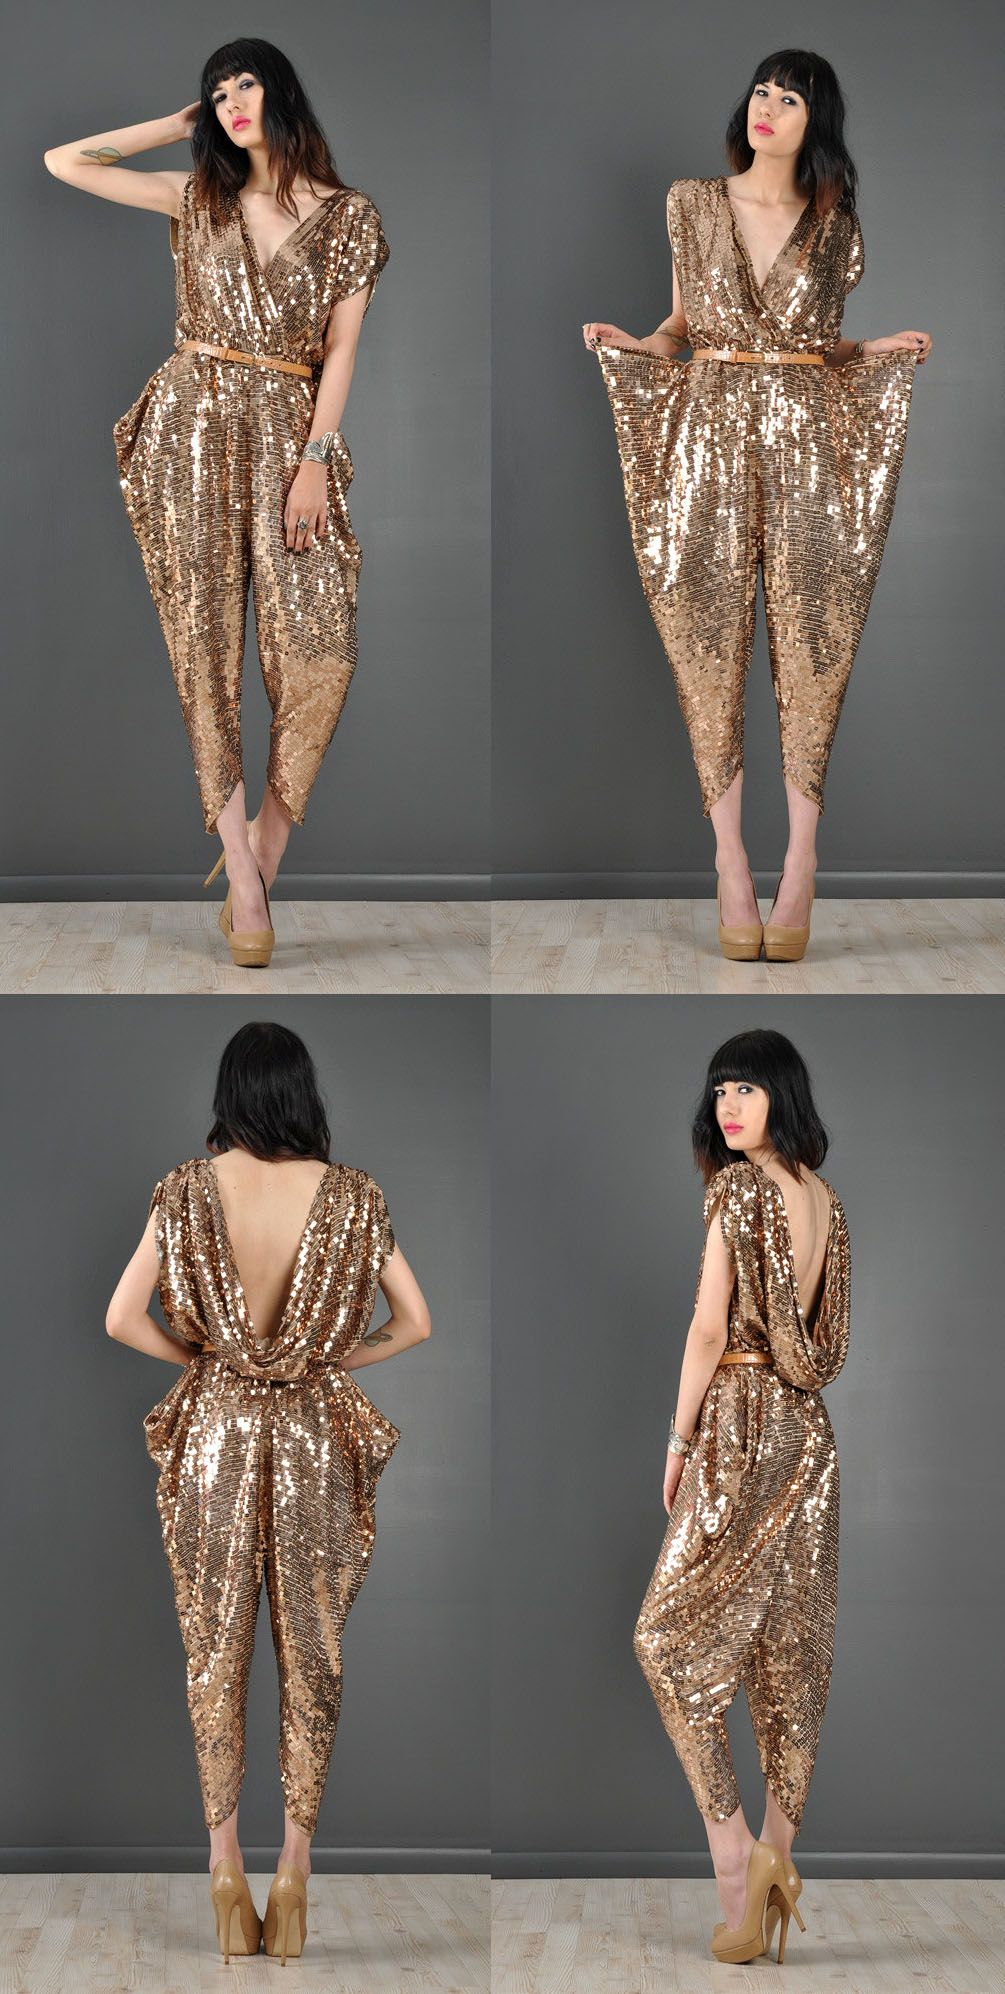 91b0e5f05b 1970s early 80s vintage sequin encrusted jumpsuit https   bellanblue.com